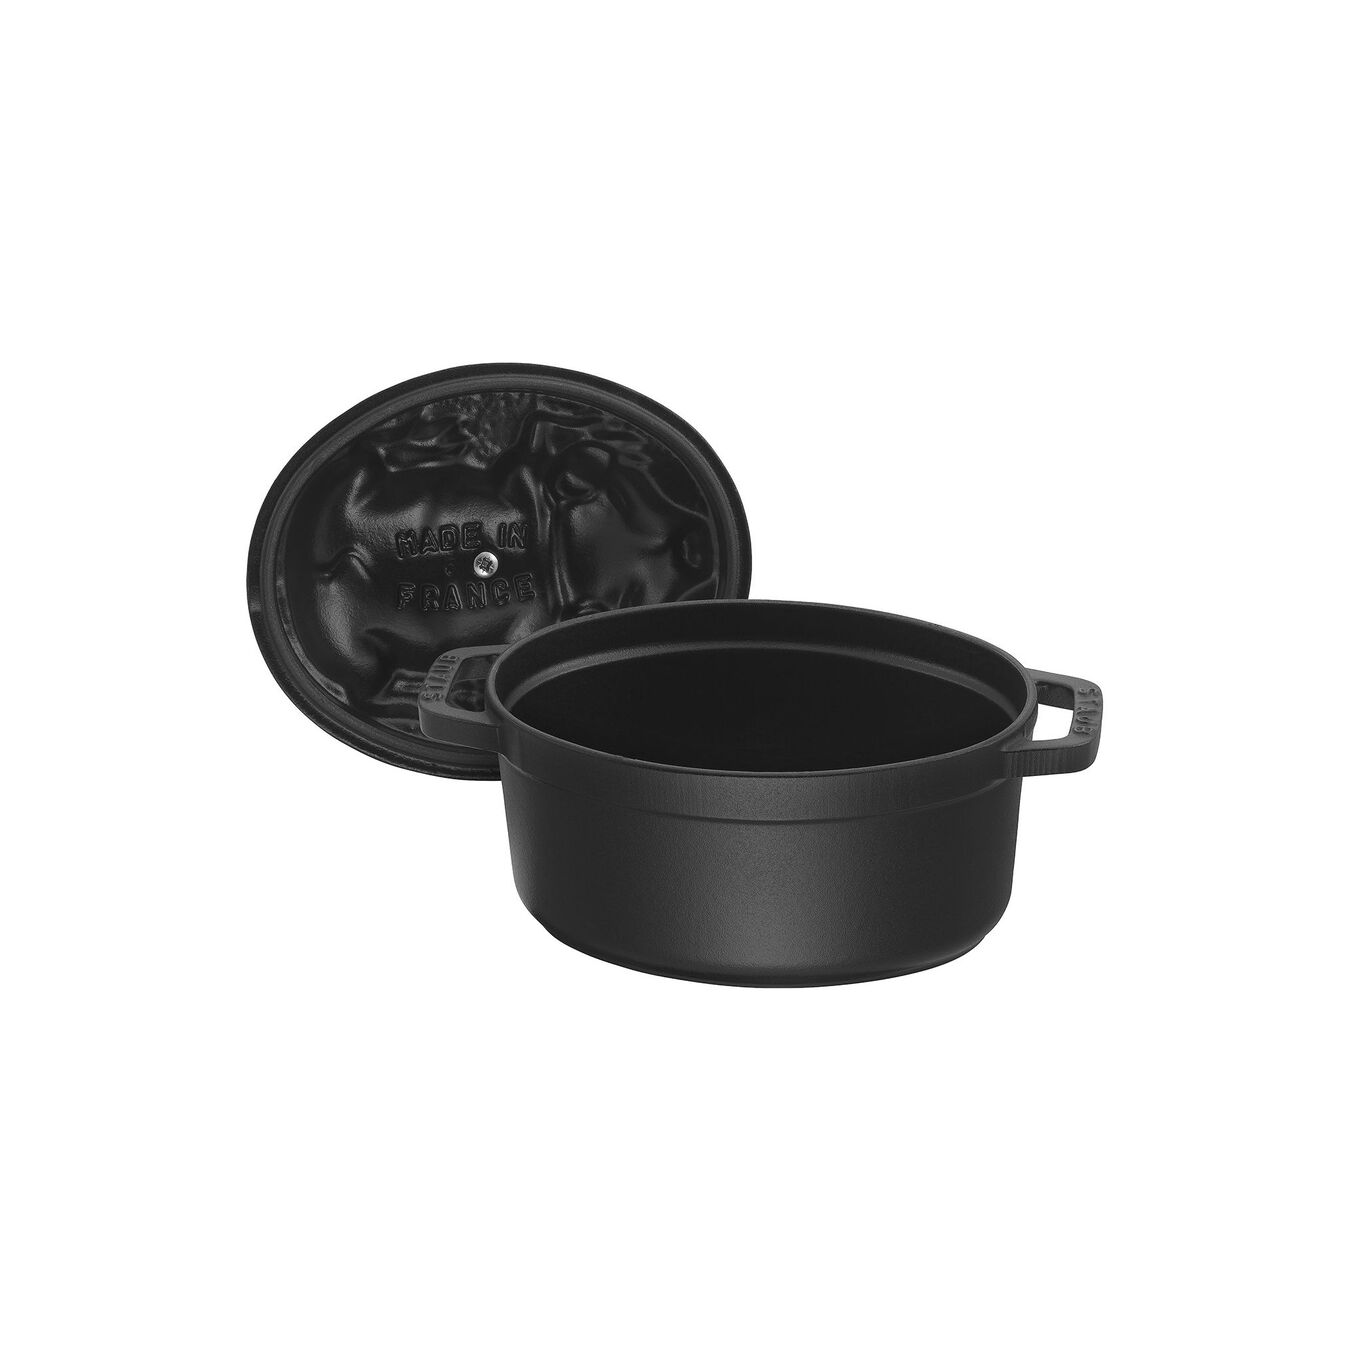 1 l Cast iron oval Faitout, Black,,large 6